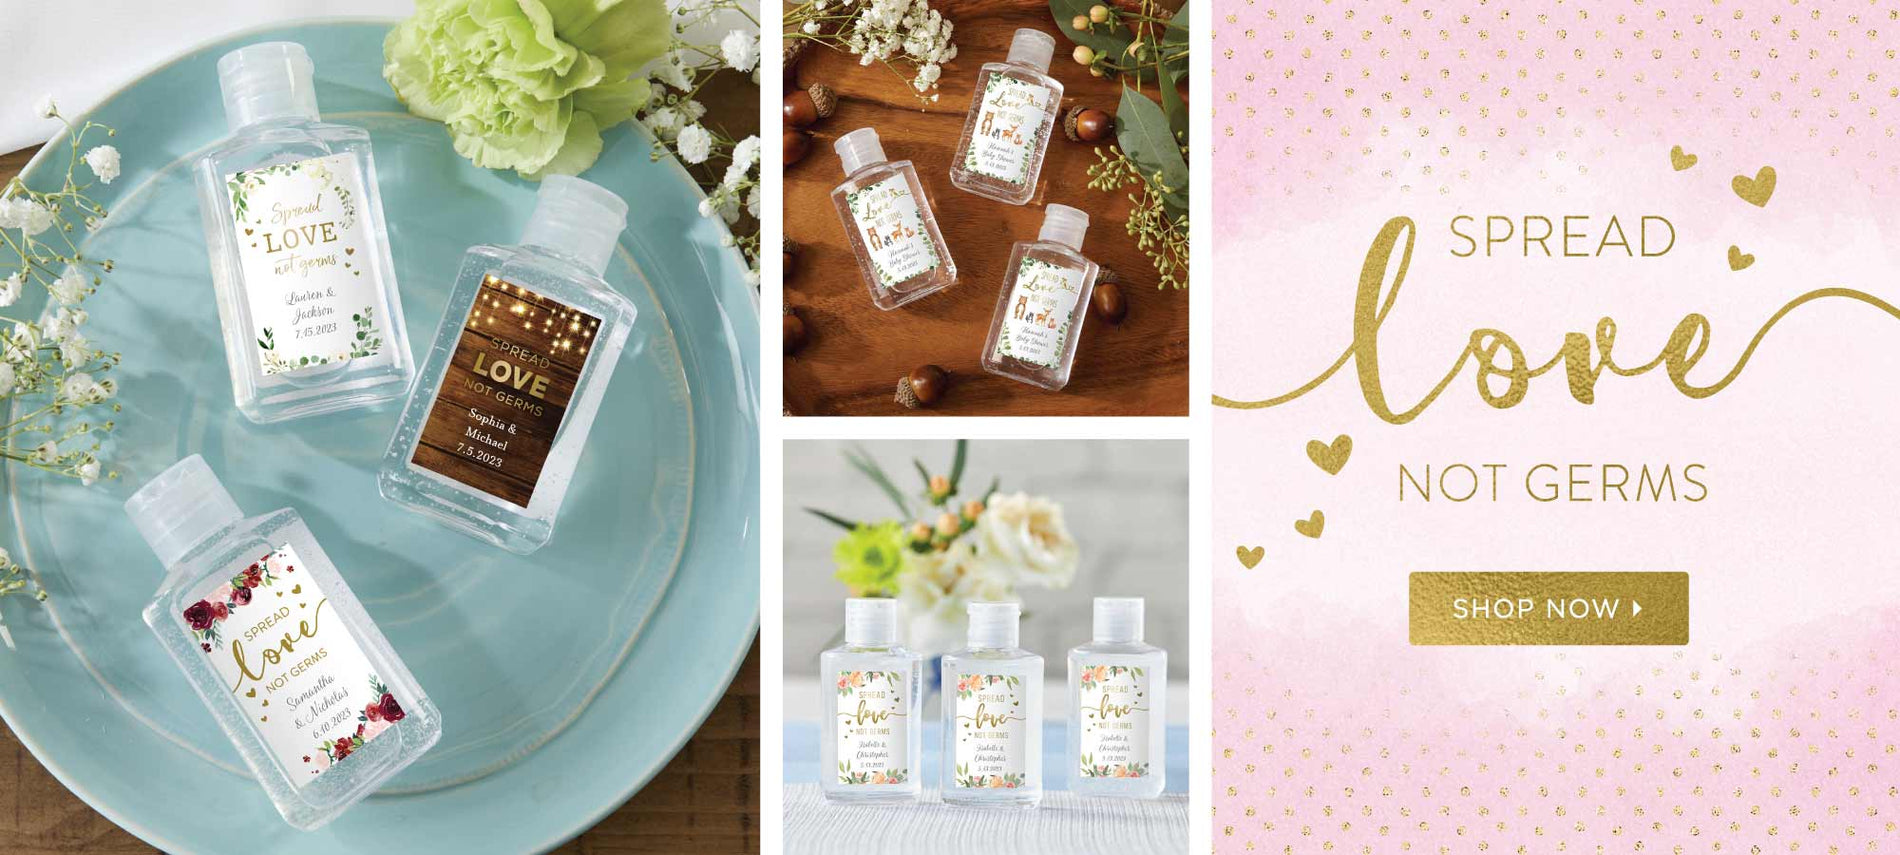 Personalized 2 oz. Hand Sanitizer for Bridal Showers, Dinner Party, Receptions & More! | Shop My Wedding Favors for Covid Friendly Favors & Accessories.